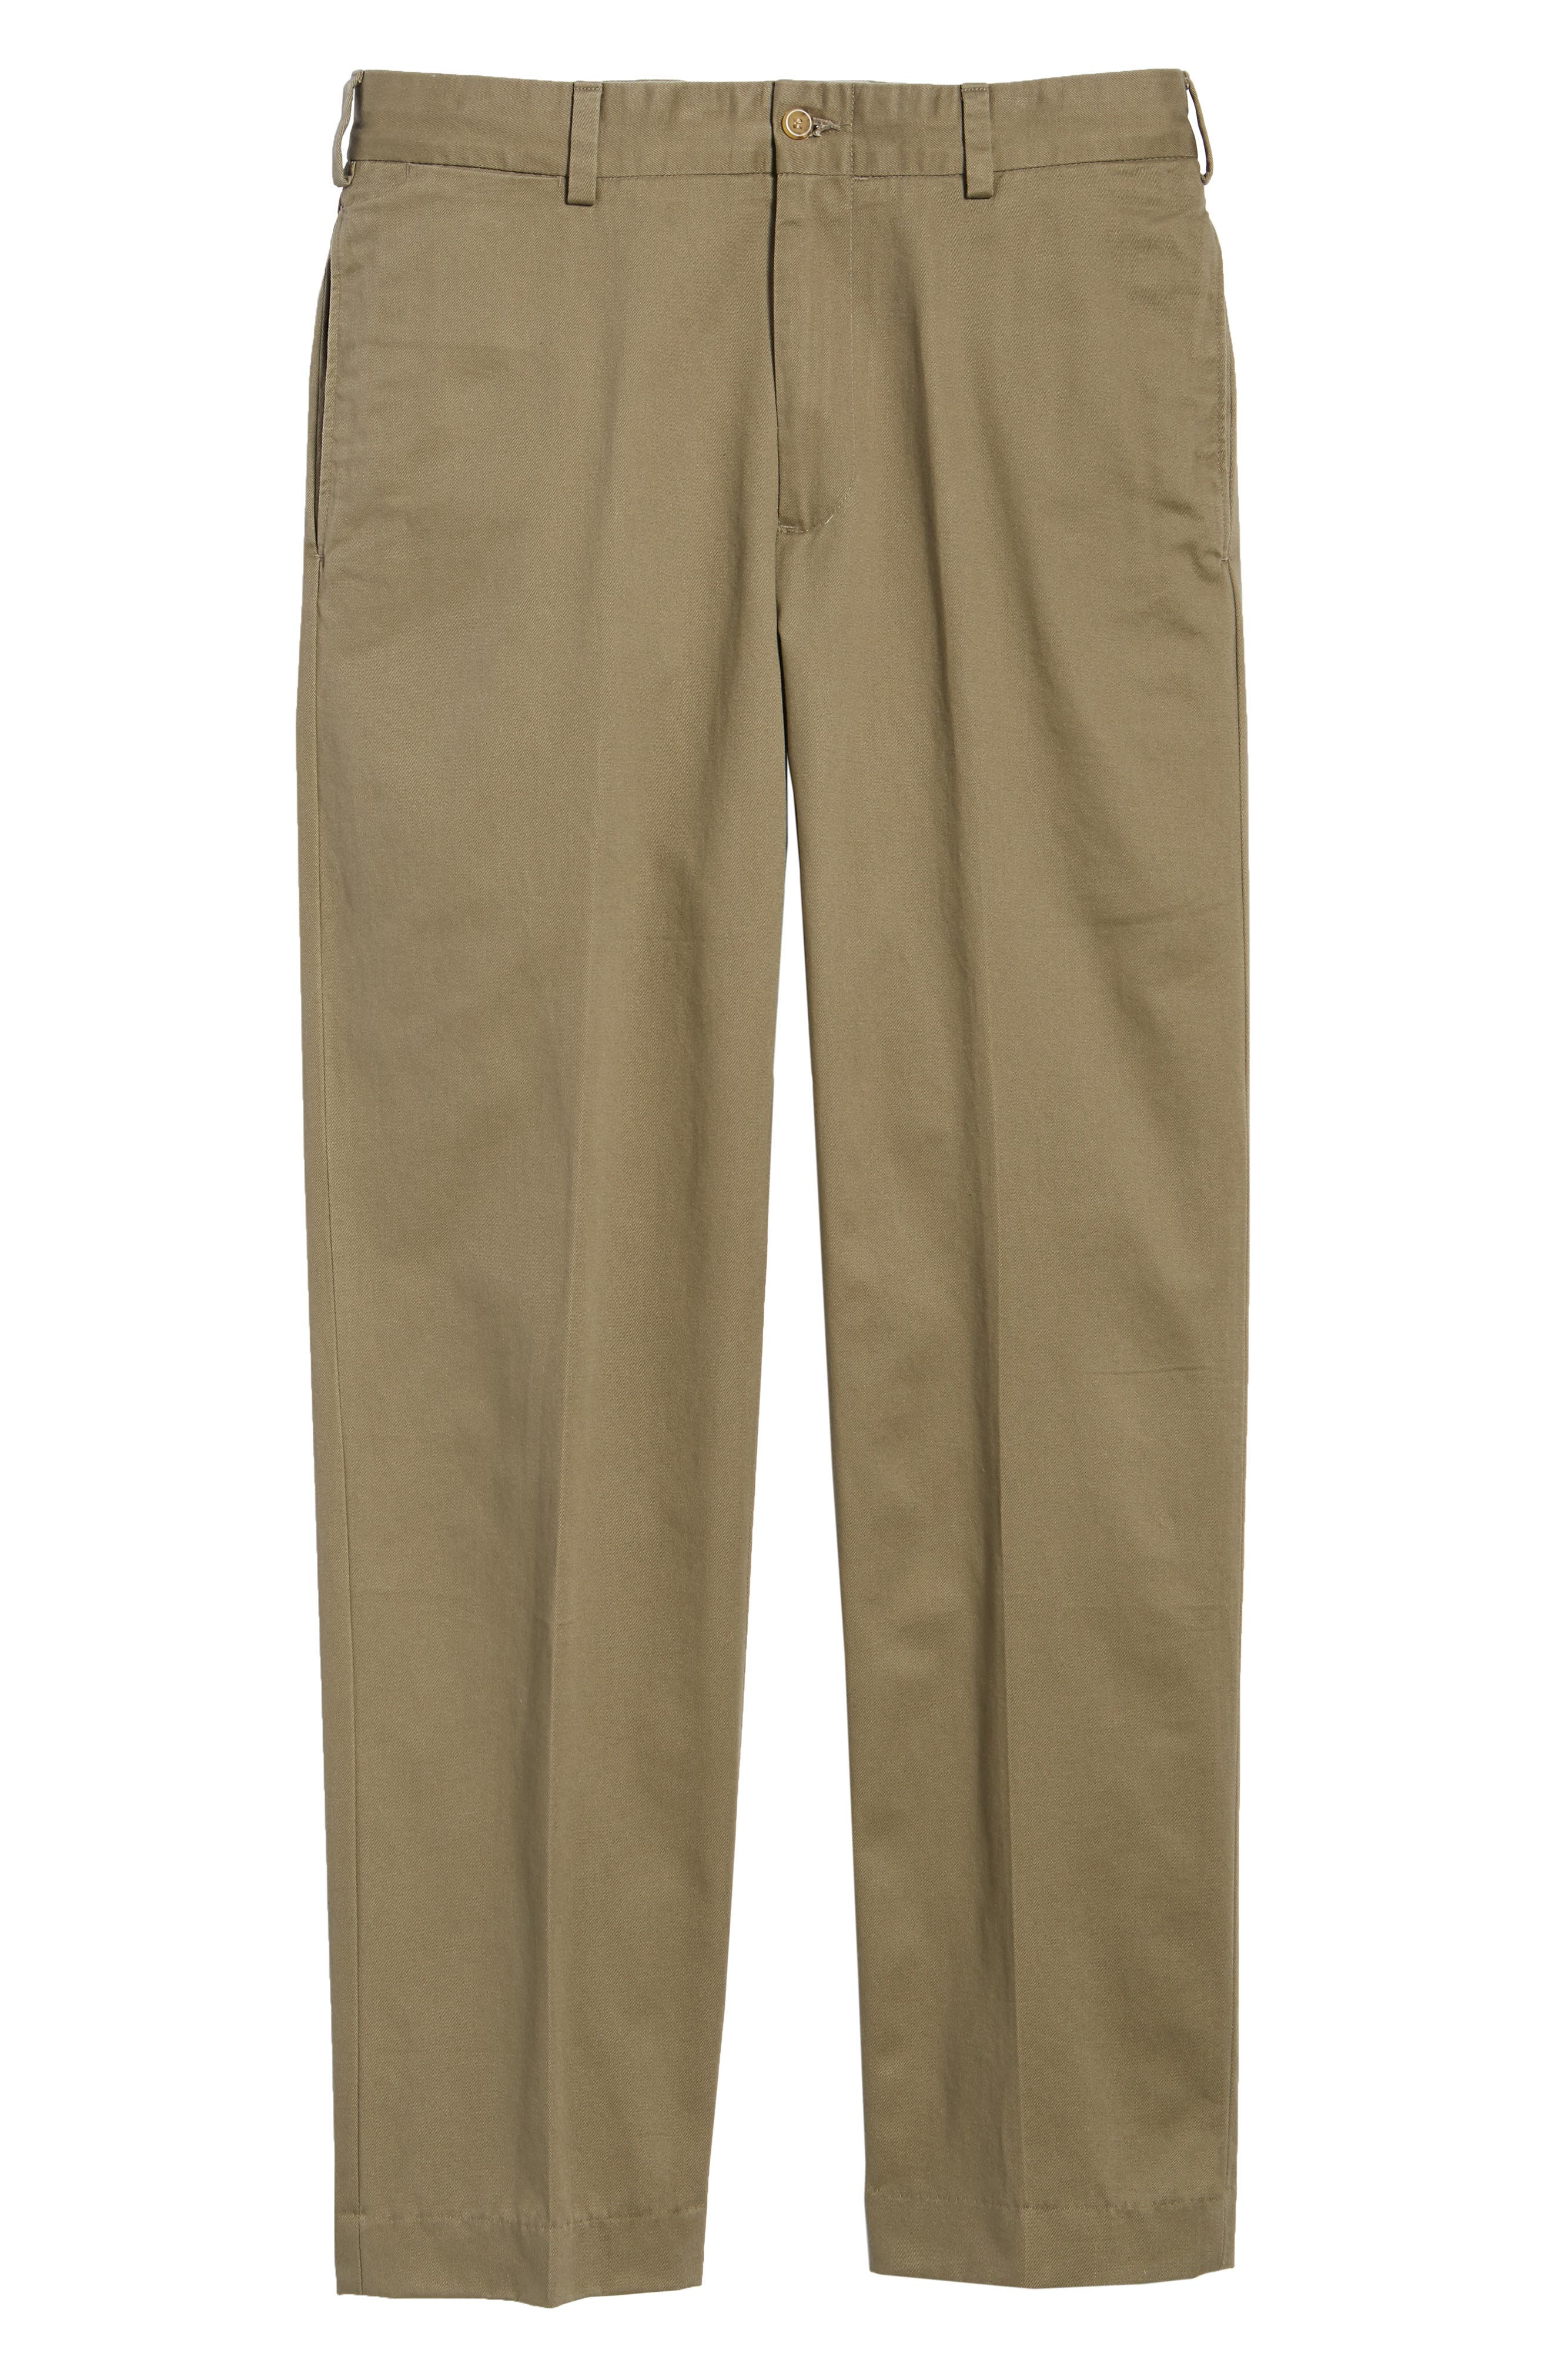 M2 Classic Fit Flat Front Vintage Twill Pants,                             Alternate thumbnail 6, color,                             Olive